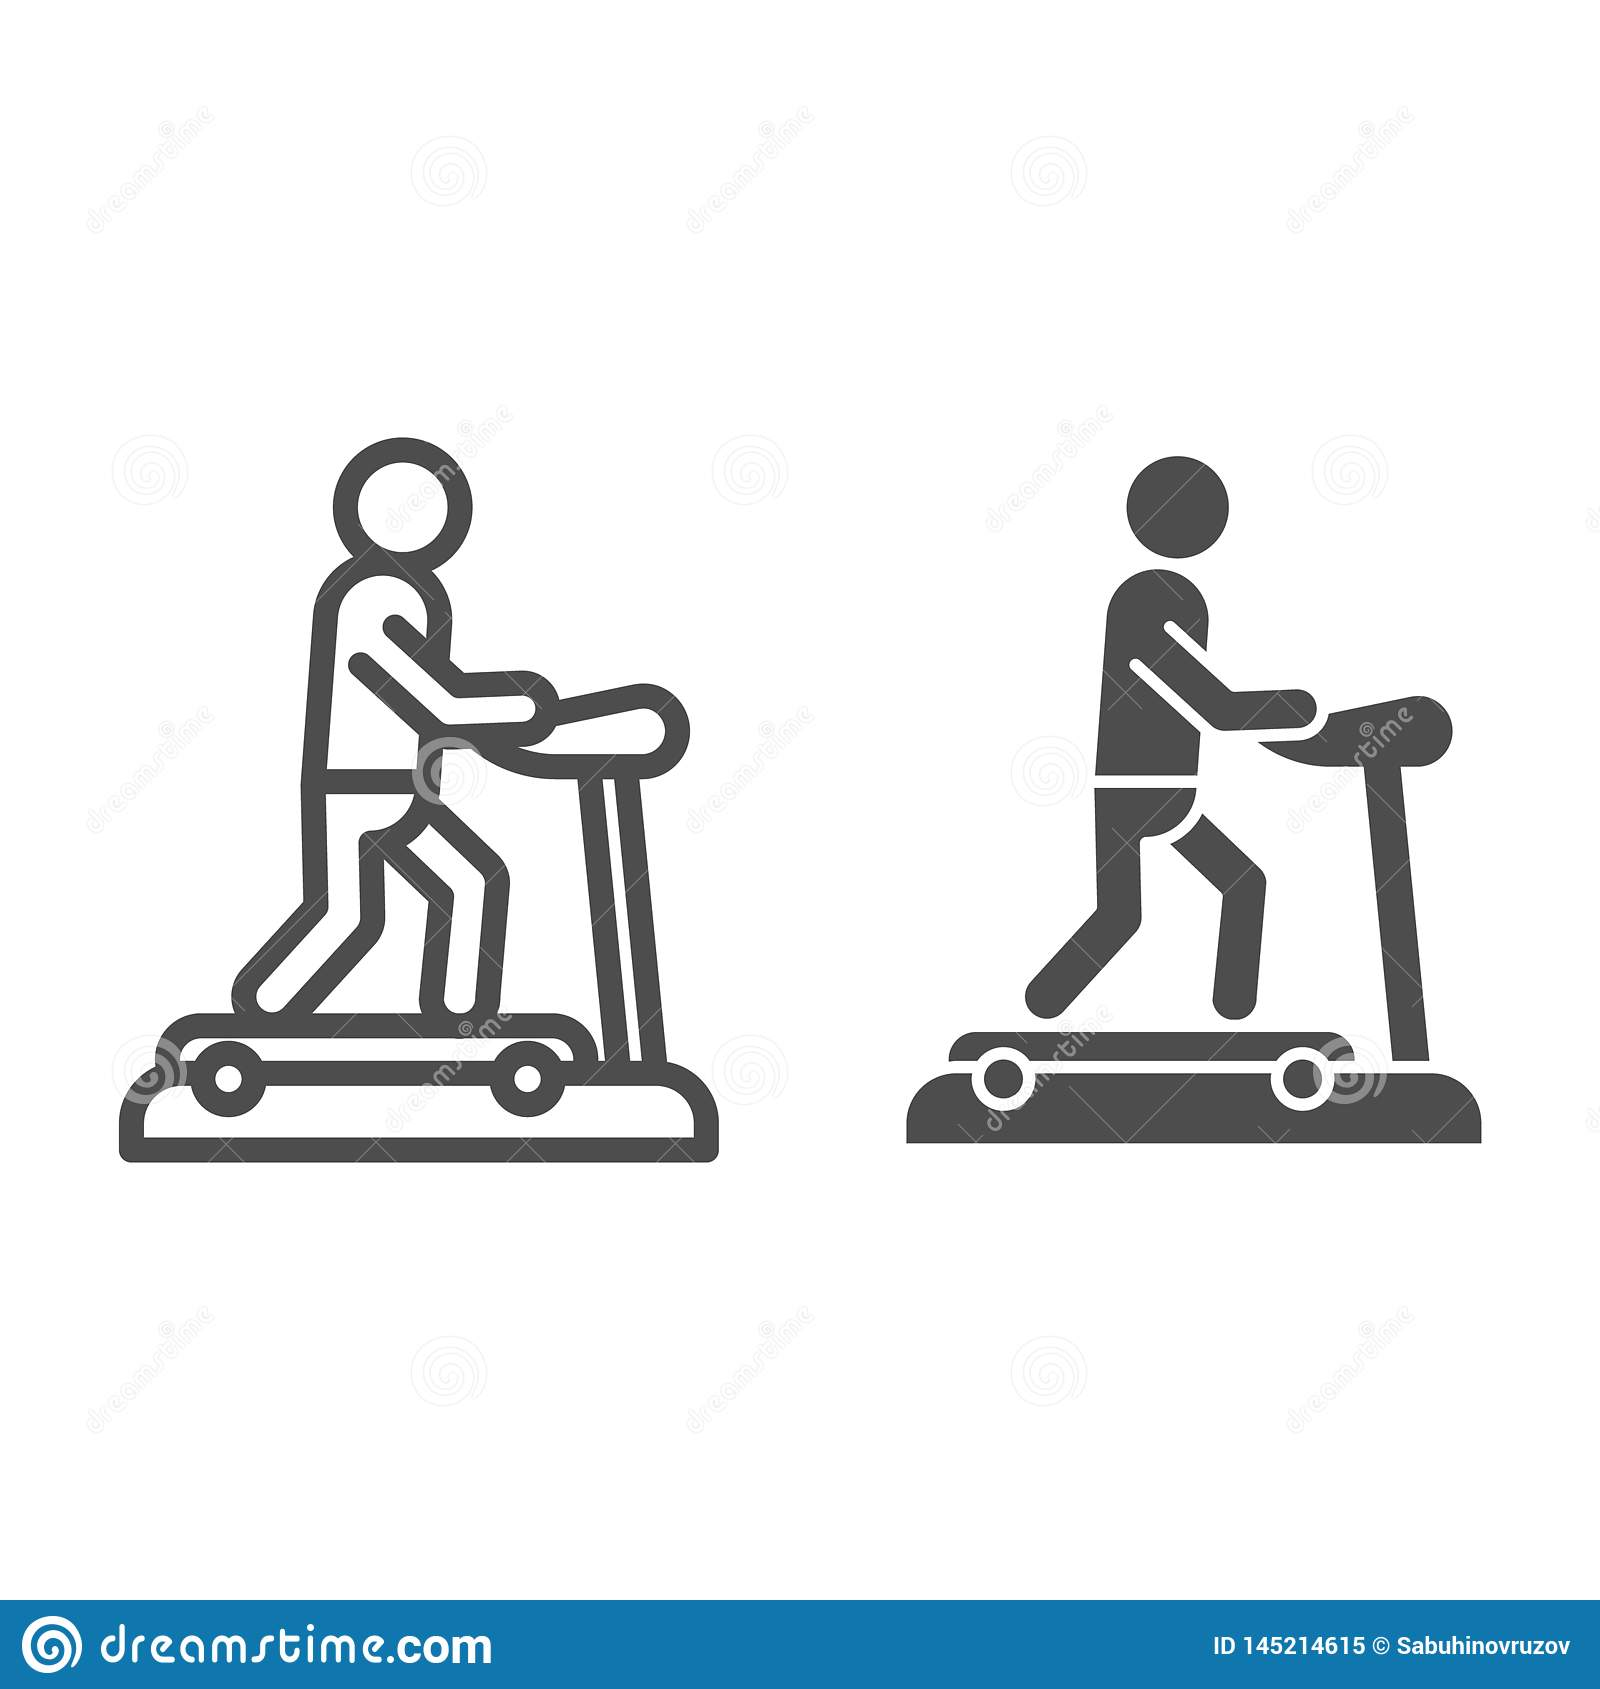 Treadmill line and glyph icon. Training man vector illustration isolated on white. Running track outline style design